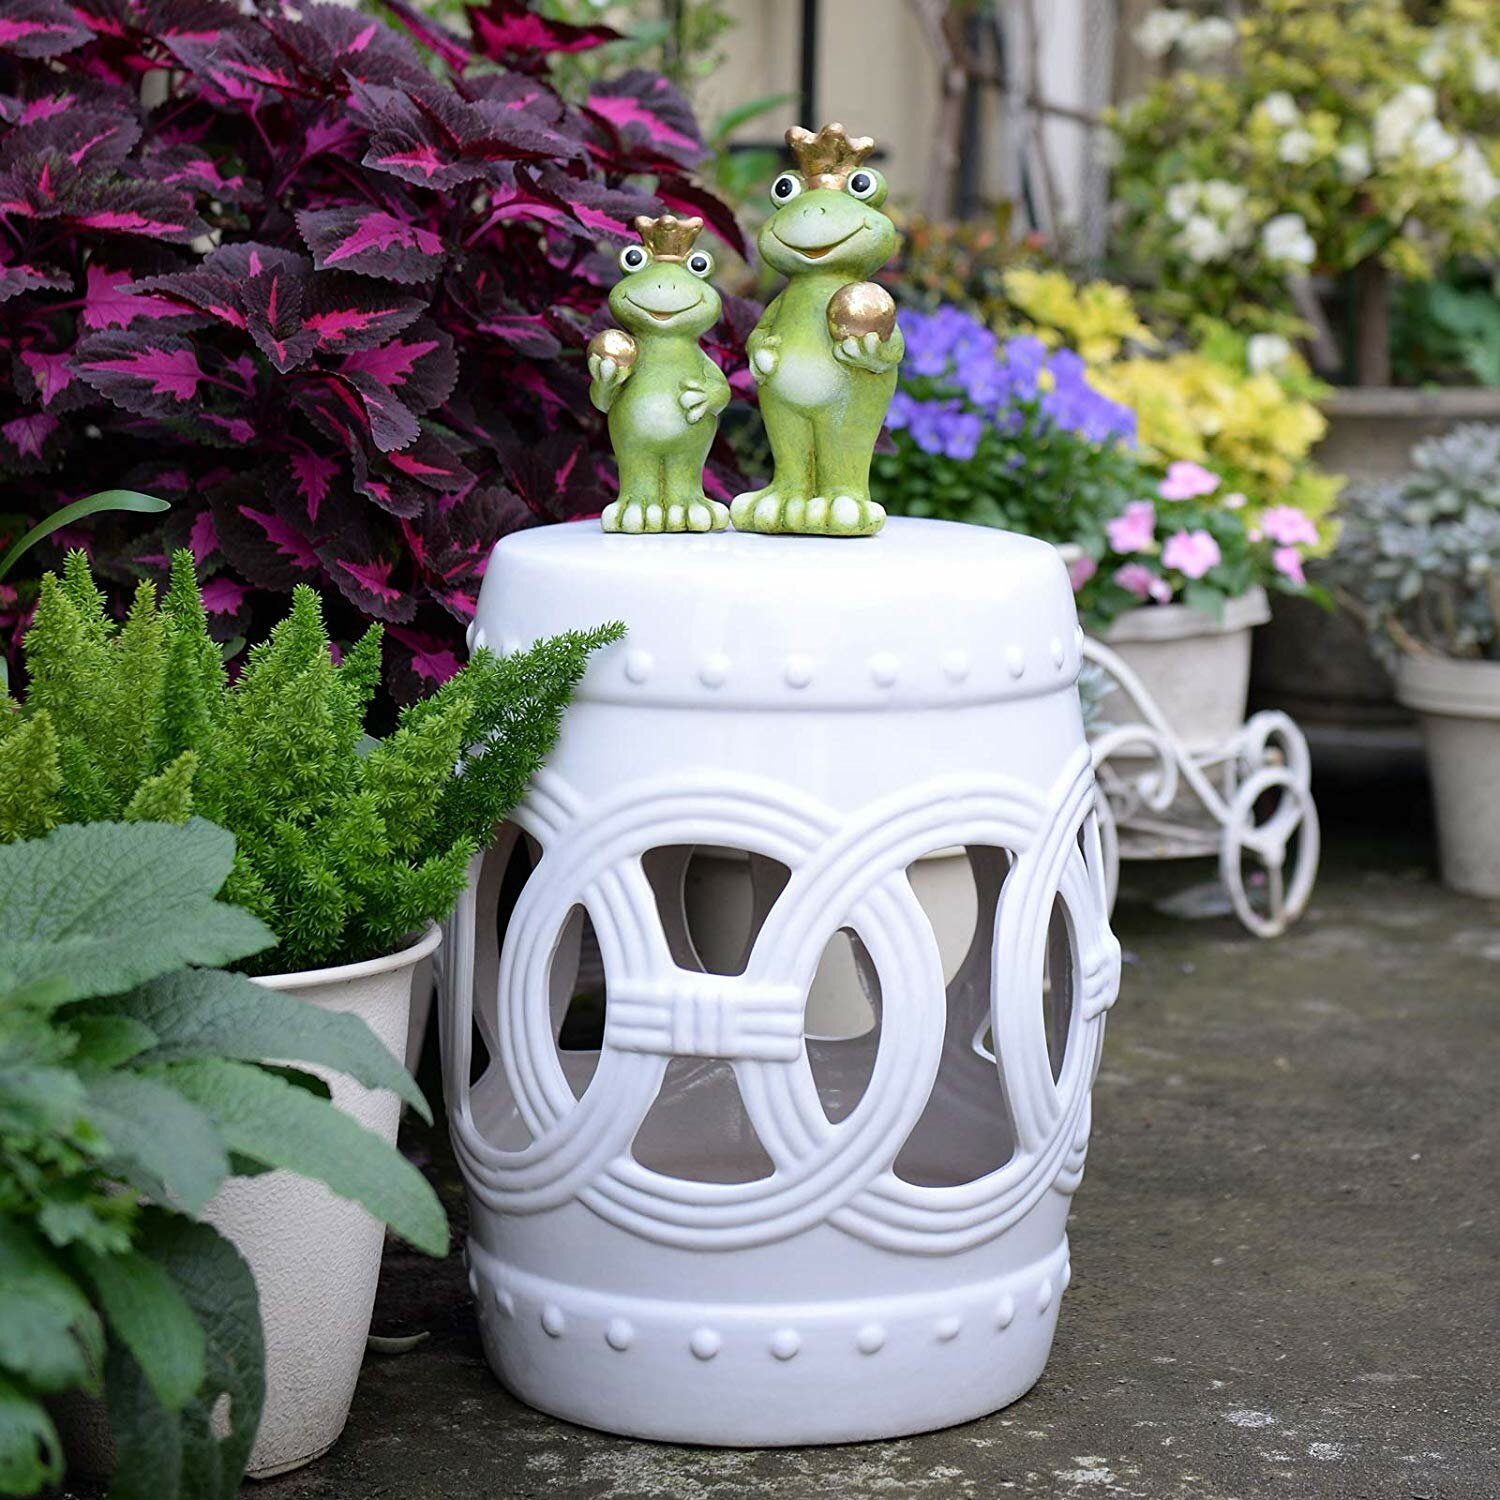 Harwich Ceramic Knotted Rings Garden Stool With Harwich Ceramic Garden Stools (View 2 of 25)